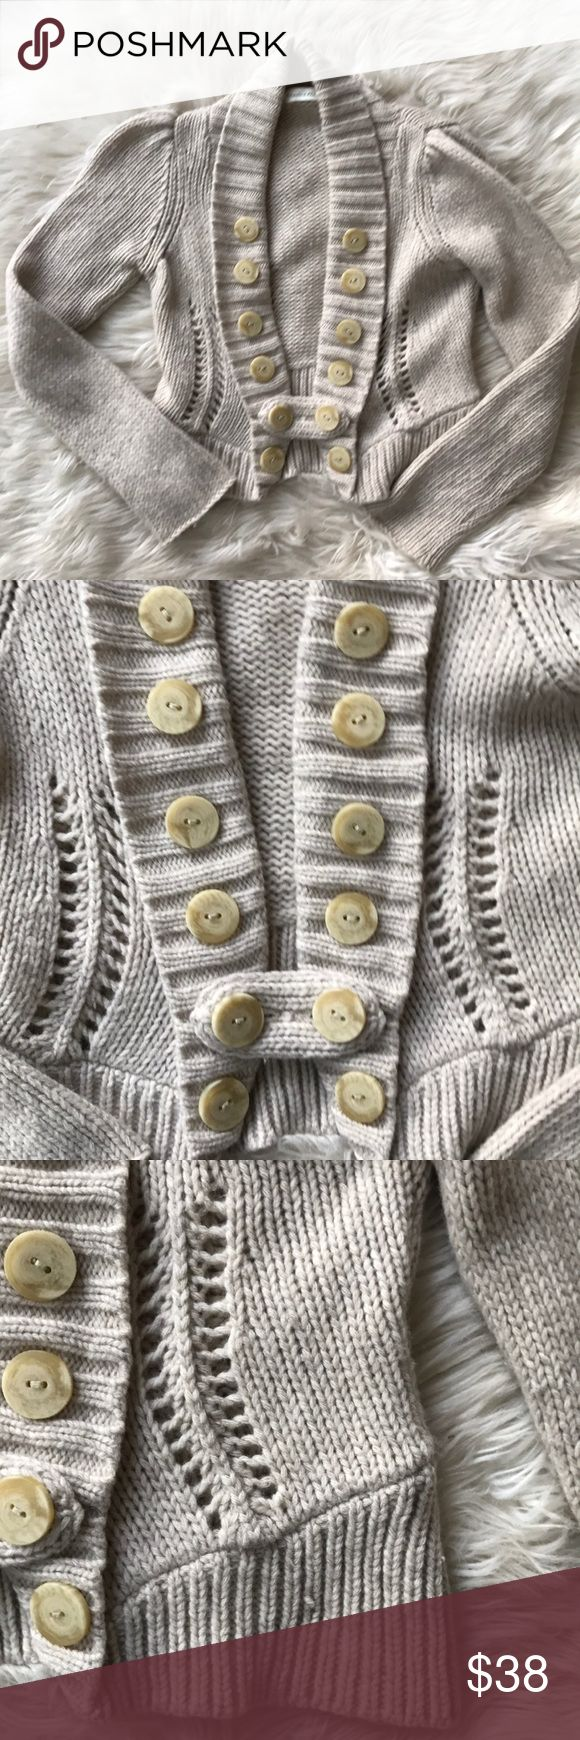 """Anthropologie Charlie & Robin Parade Route Knit Anthropologie Charlie & Robin Parade Route Cardigan Sweater. Excellent used condition. Some very minor piling. Oatmeal color, 100% wool. Lovely knitted features. Very cozy. Wooden buttons on each side and two button tab closure. Thus tab can be flipped and worn with the fabric facing out for contrast. Pit to pit 15"""", length 19"""". Anthropologie Sweaters Cardigans"""